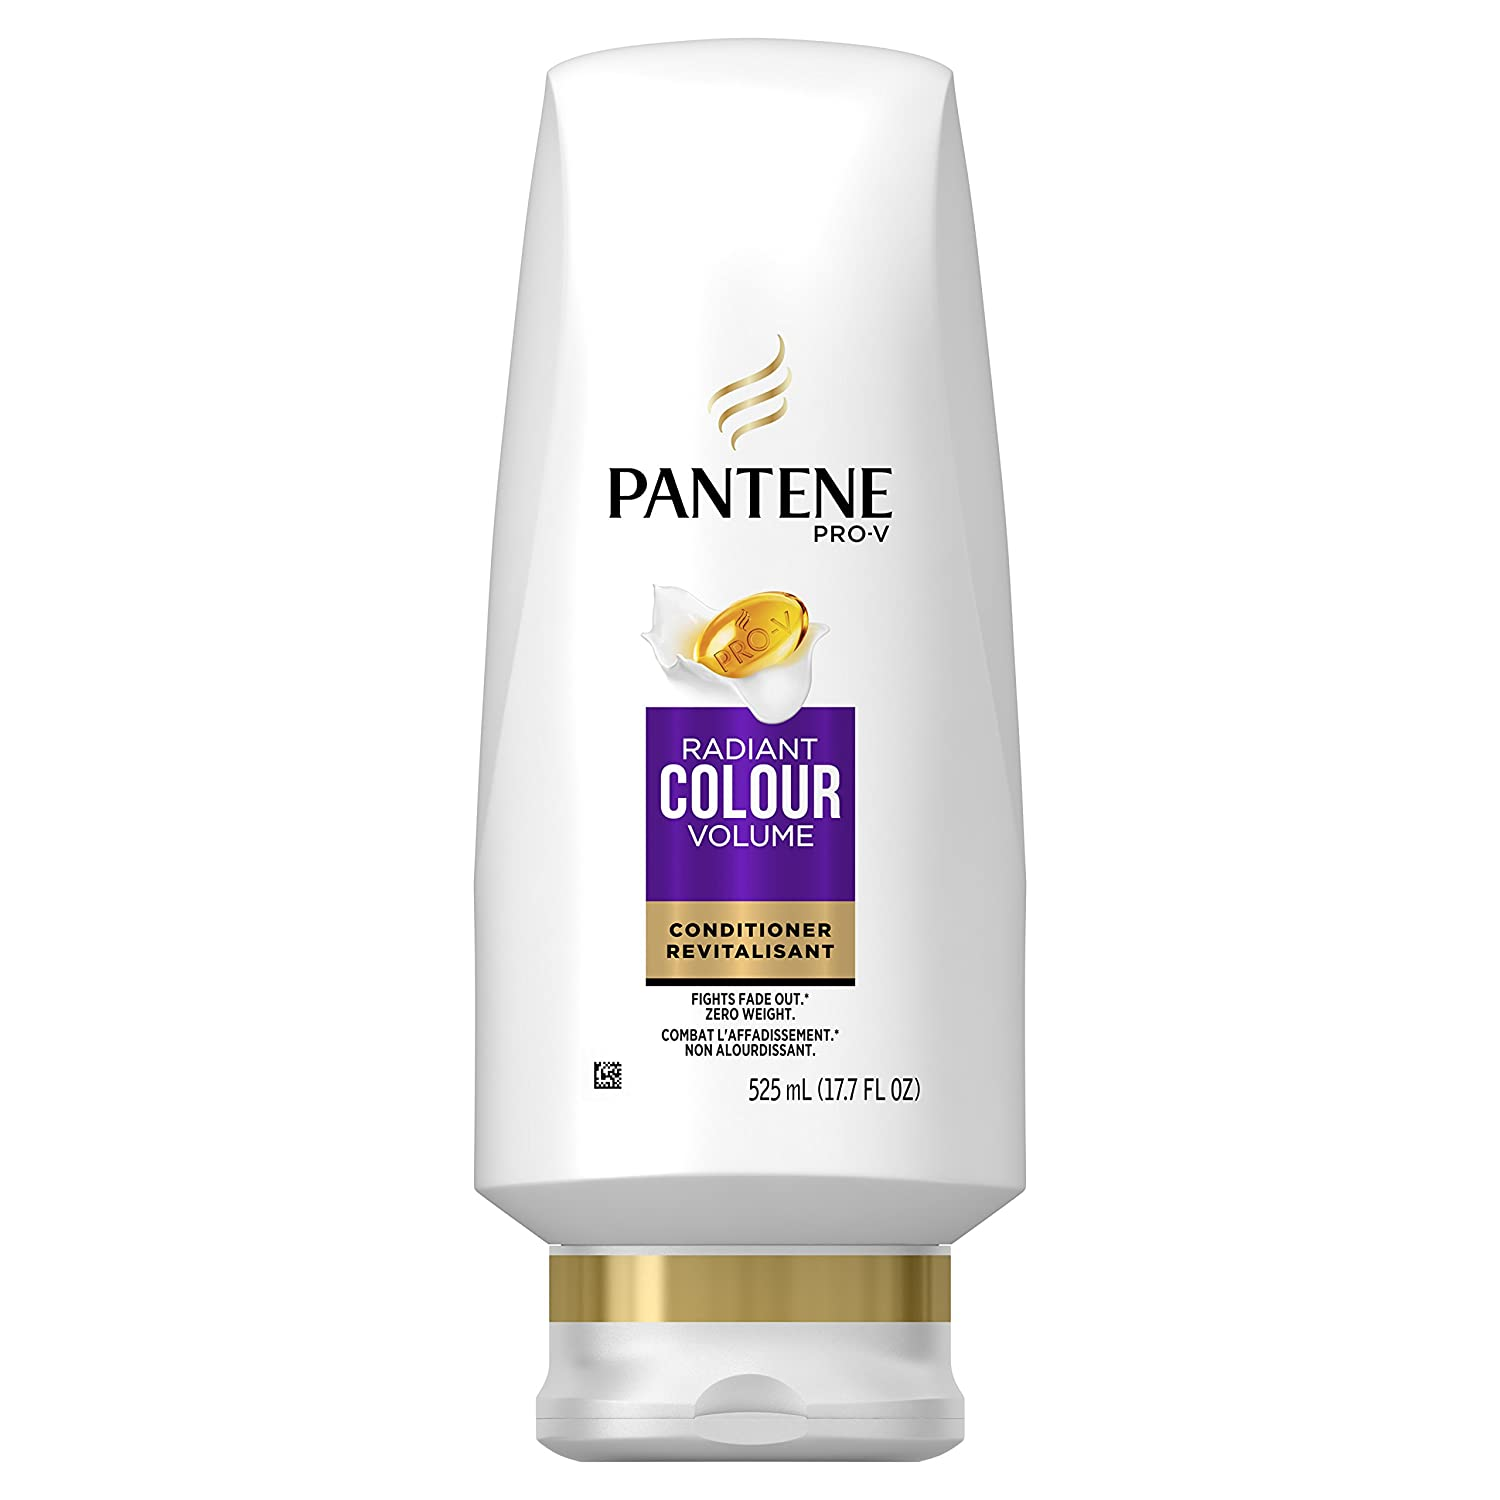 Pantene Pro-V Radiant Colour Volume Conditioner, 525 mL Packaging may vary Procter and Gamble